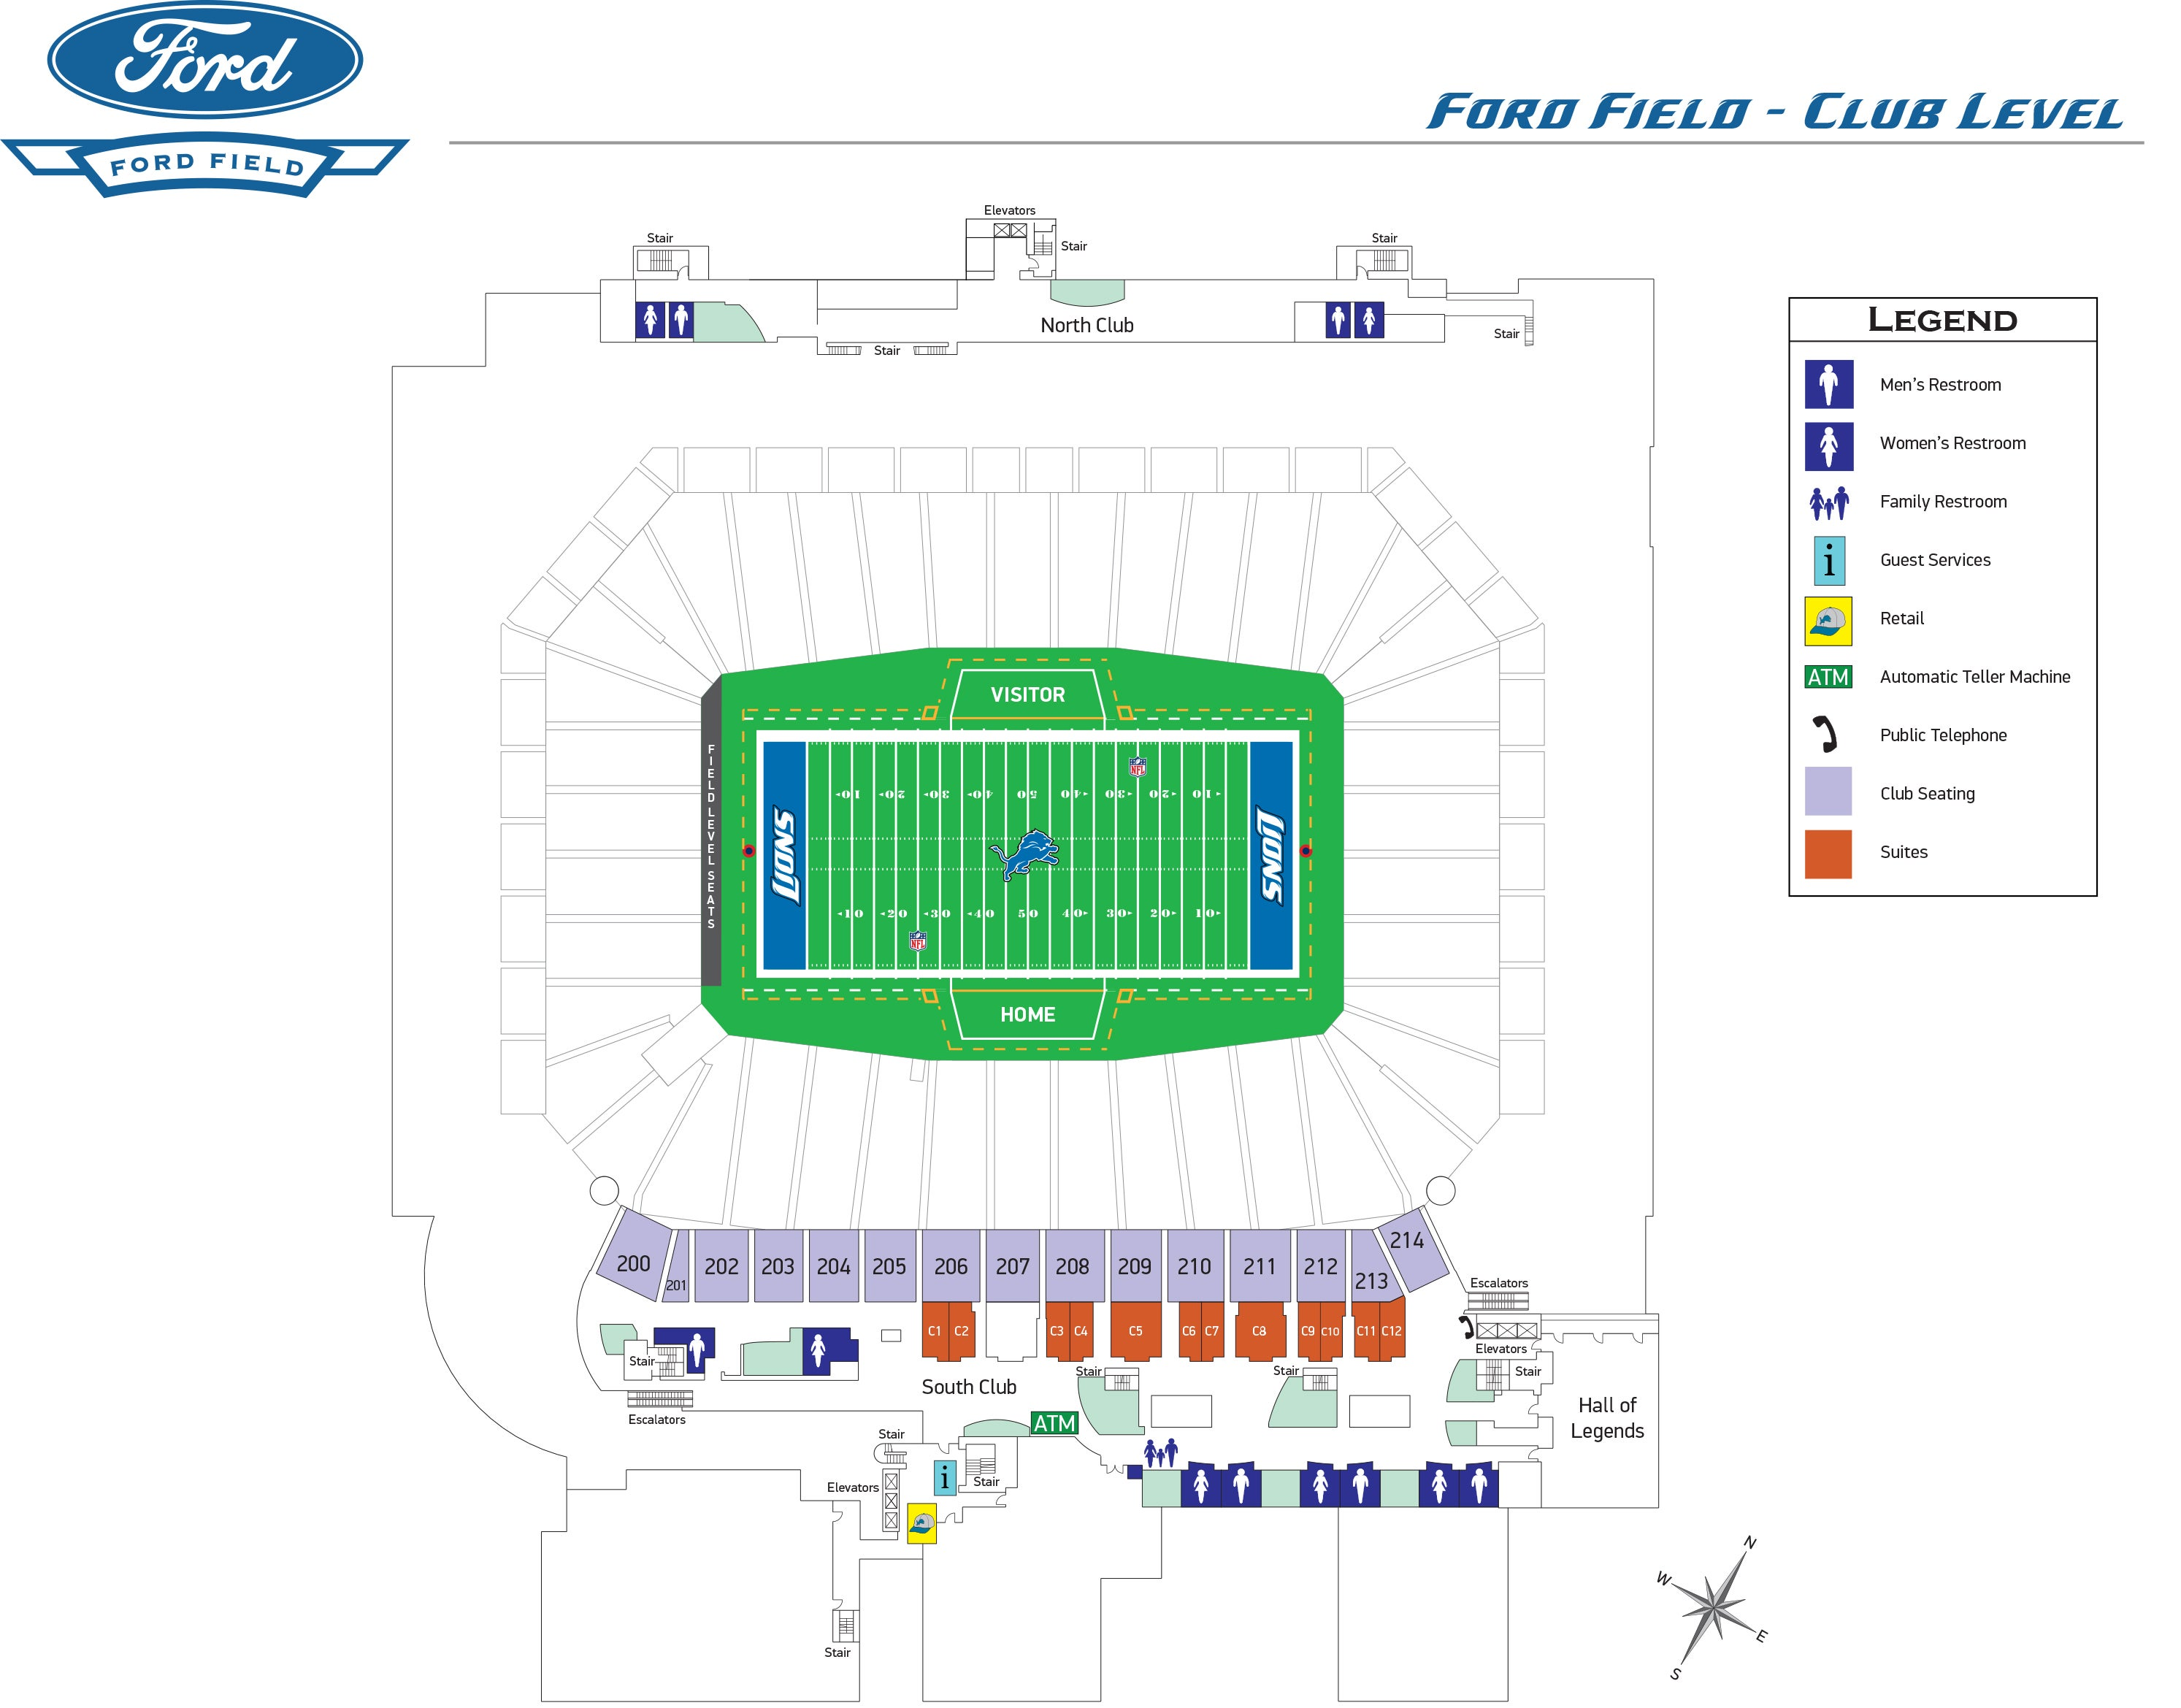 Ford-Field---Club-Level-(Horizontal-w-Legend)-1.jpg